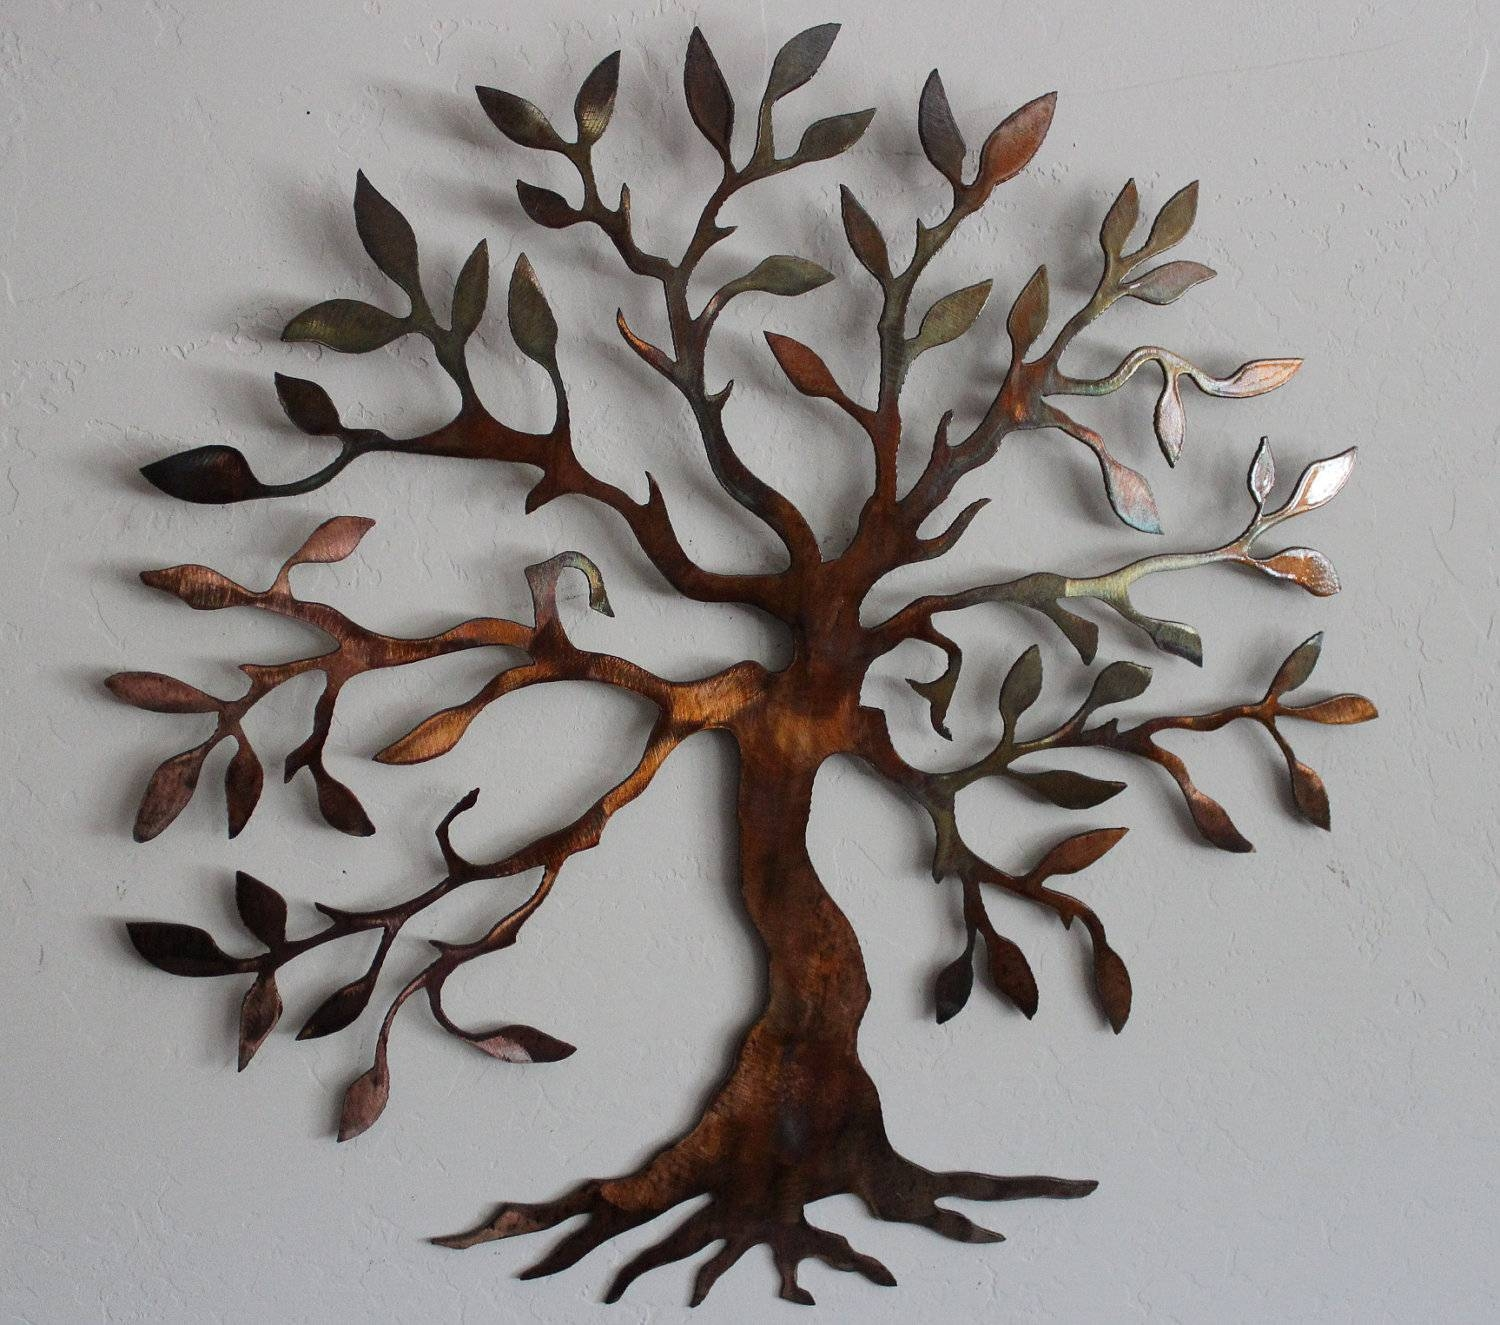 Charming Tree Metal Wall Art Decor Sculpture Design~ Popular Home Regarding Latest Home Metal Wall Art (View 5 of 20)